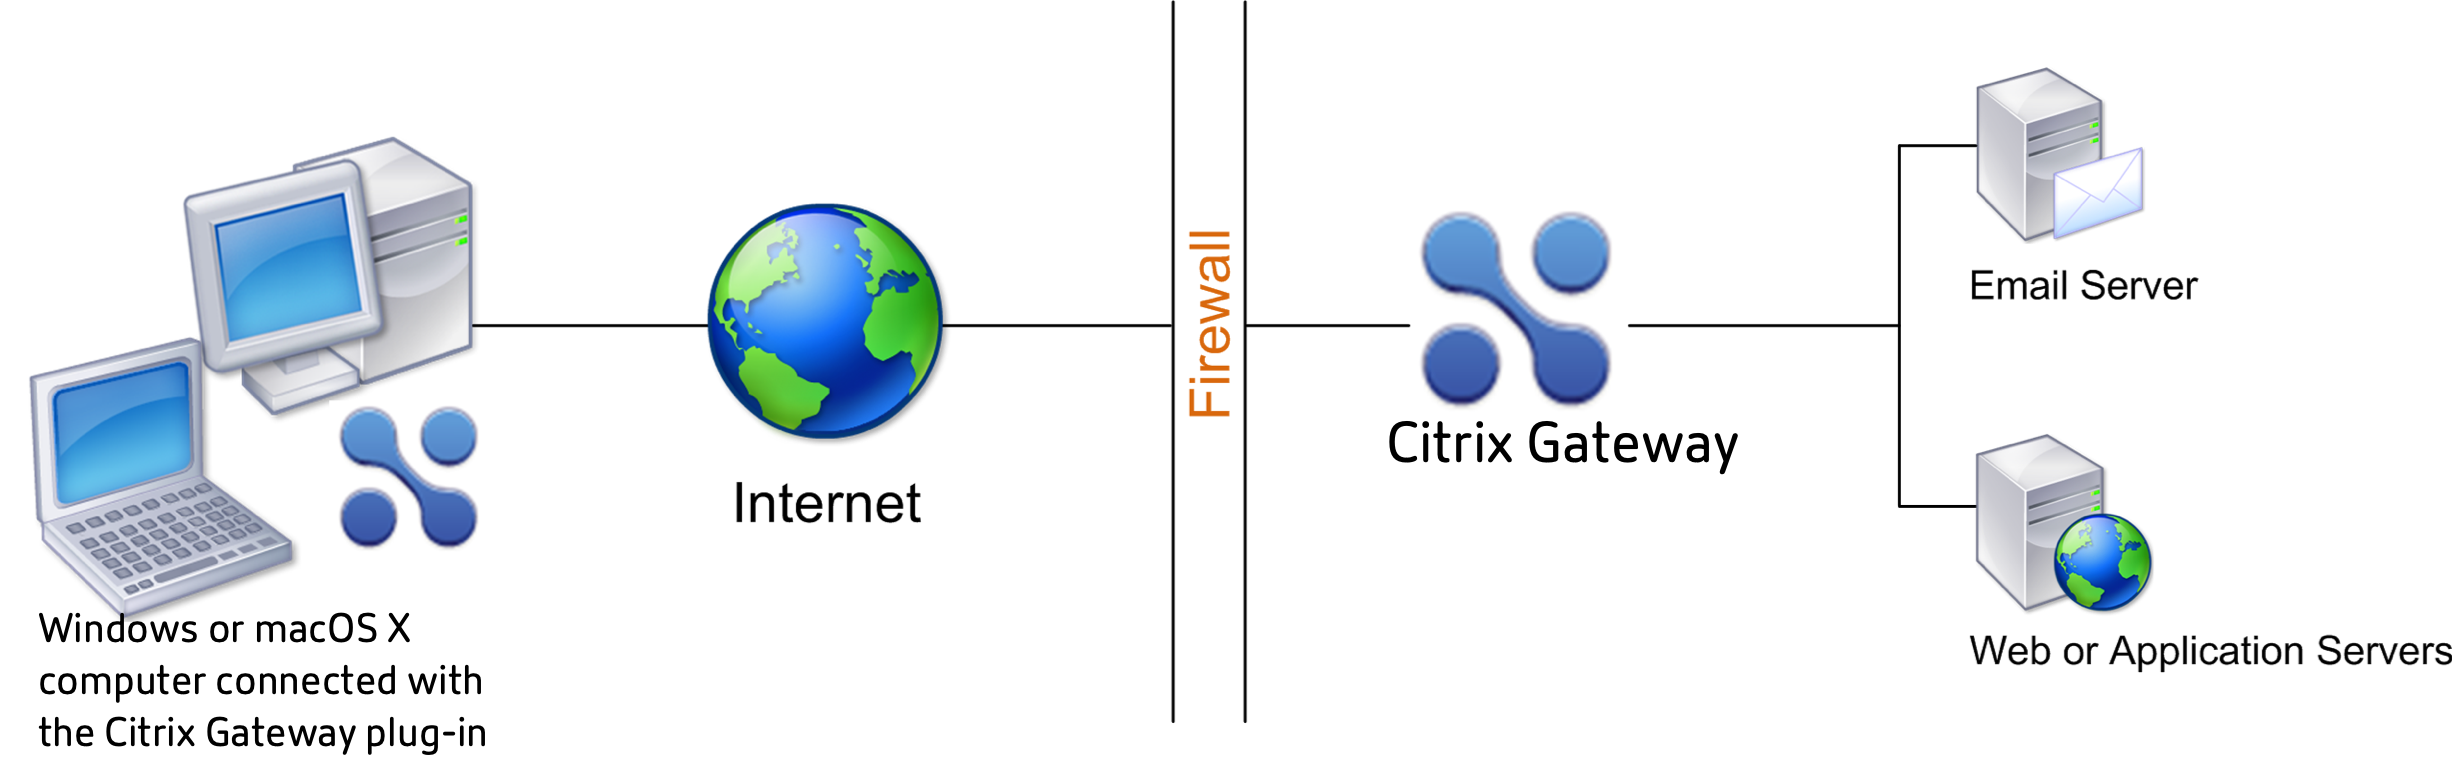 Deploy Citrix Gateway in Secure Network